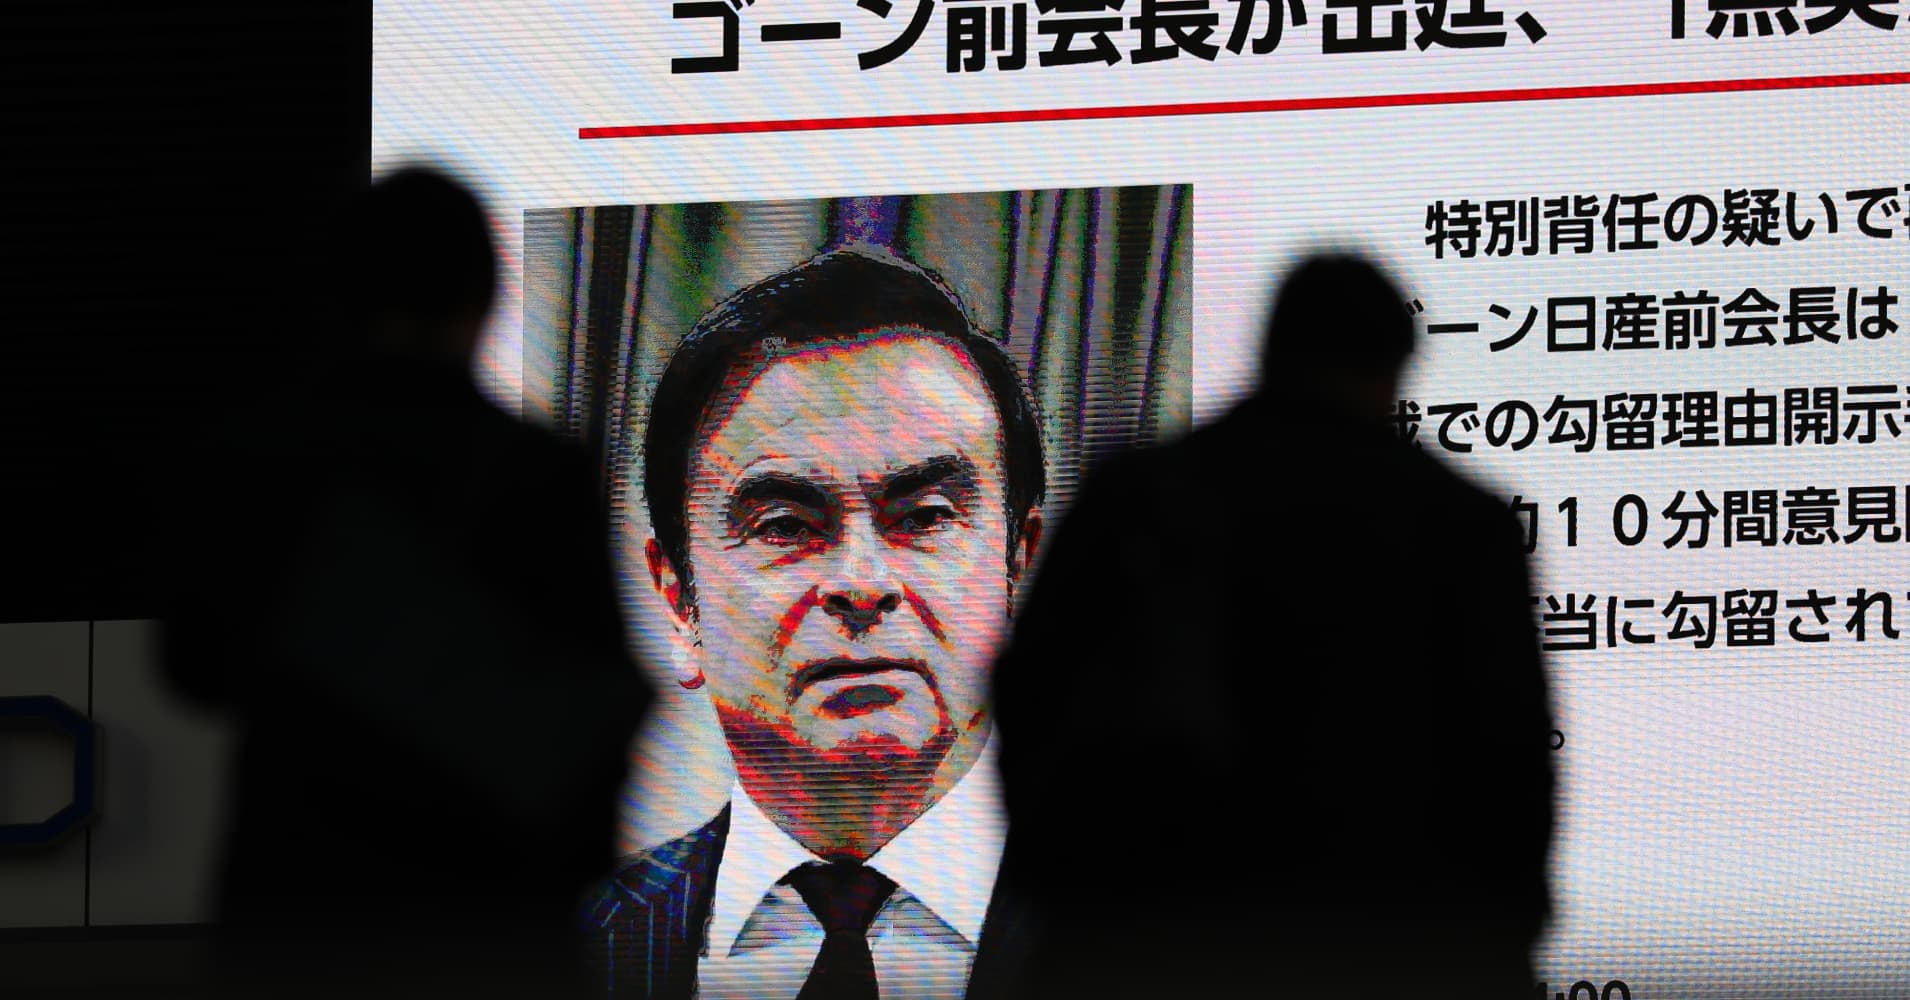 Nissan cancels lease on ex-Chairman Ghosn's Tokyo apartment